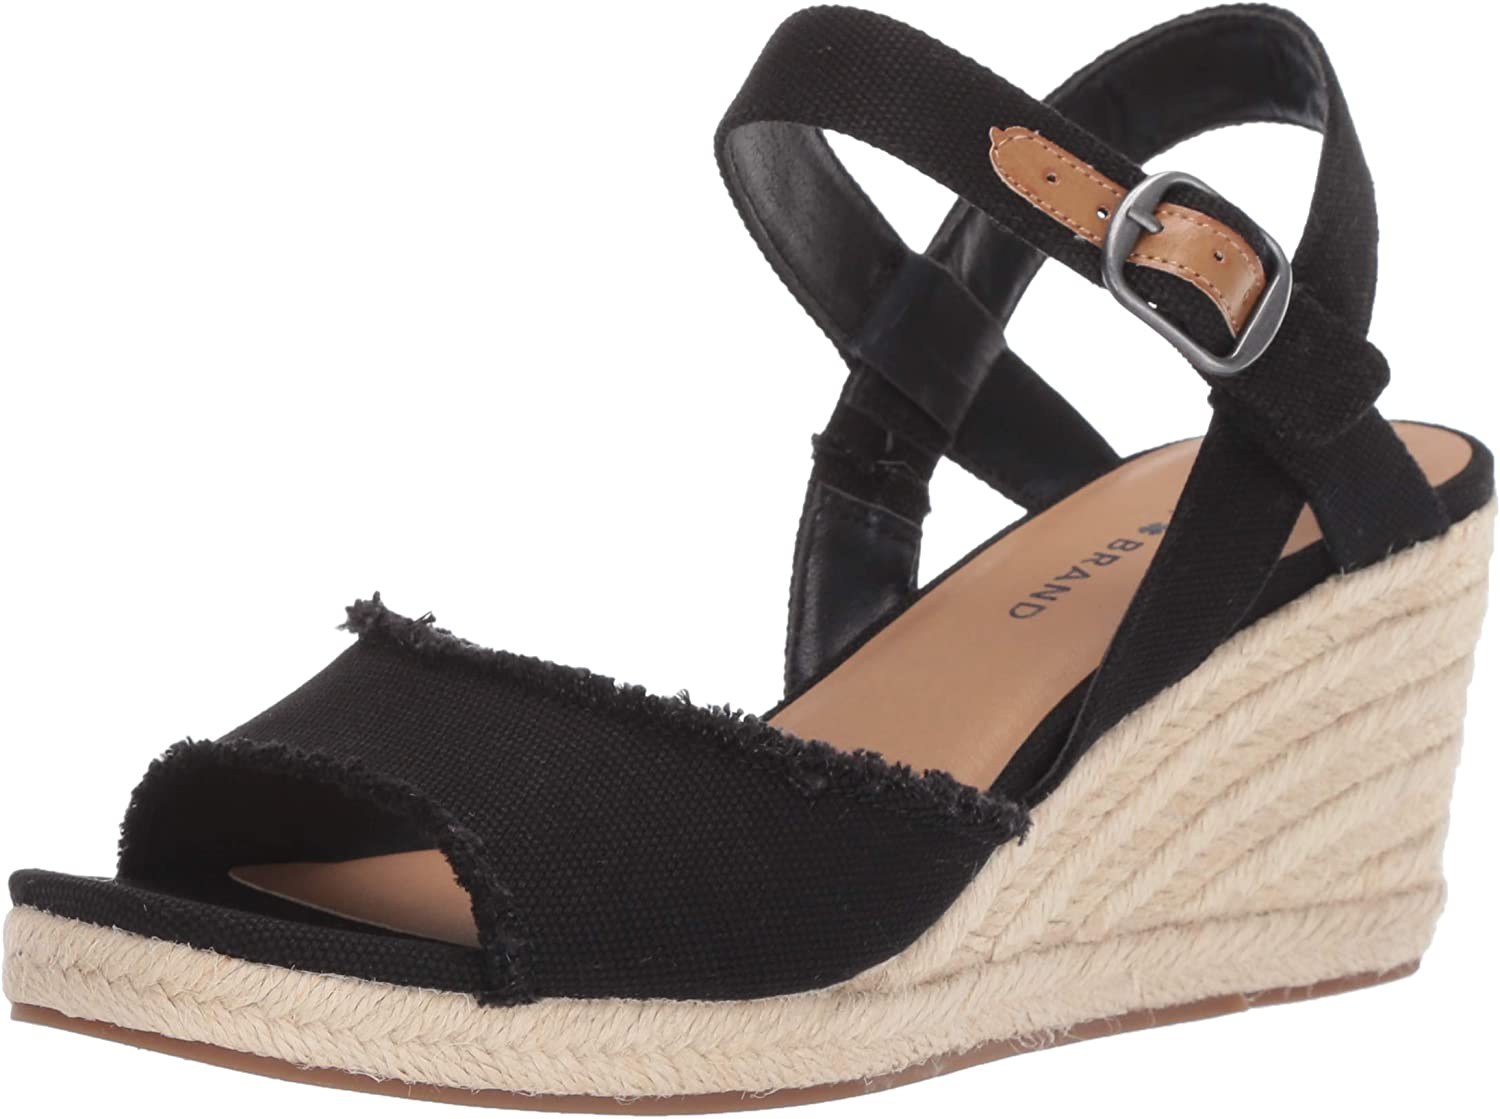 Lucky Brand Women's Mindra Popular shop is the lowest price challenge Wedge Sandal Espadrille Branded goods